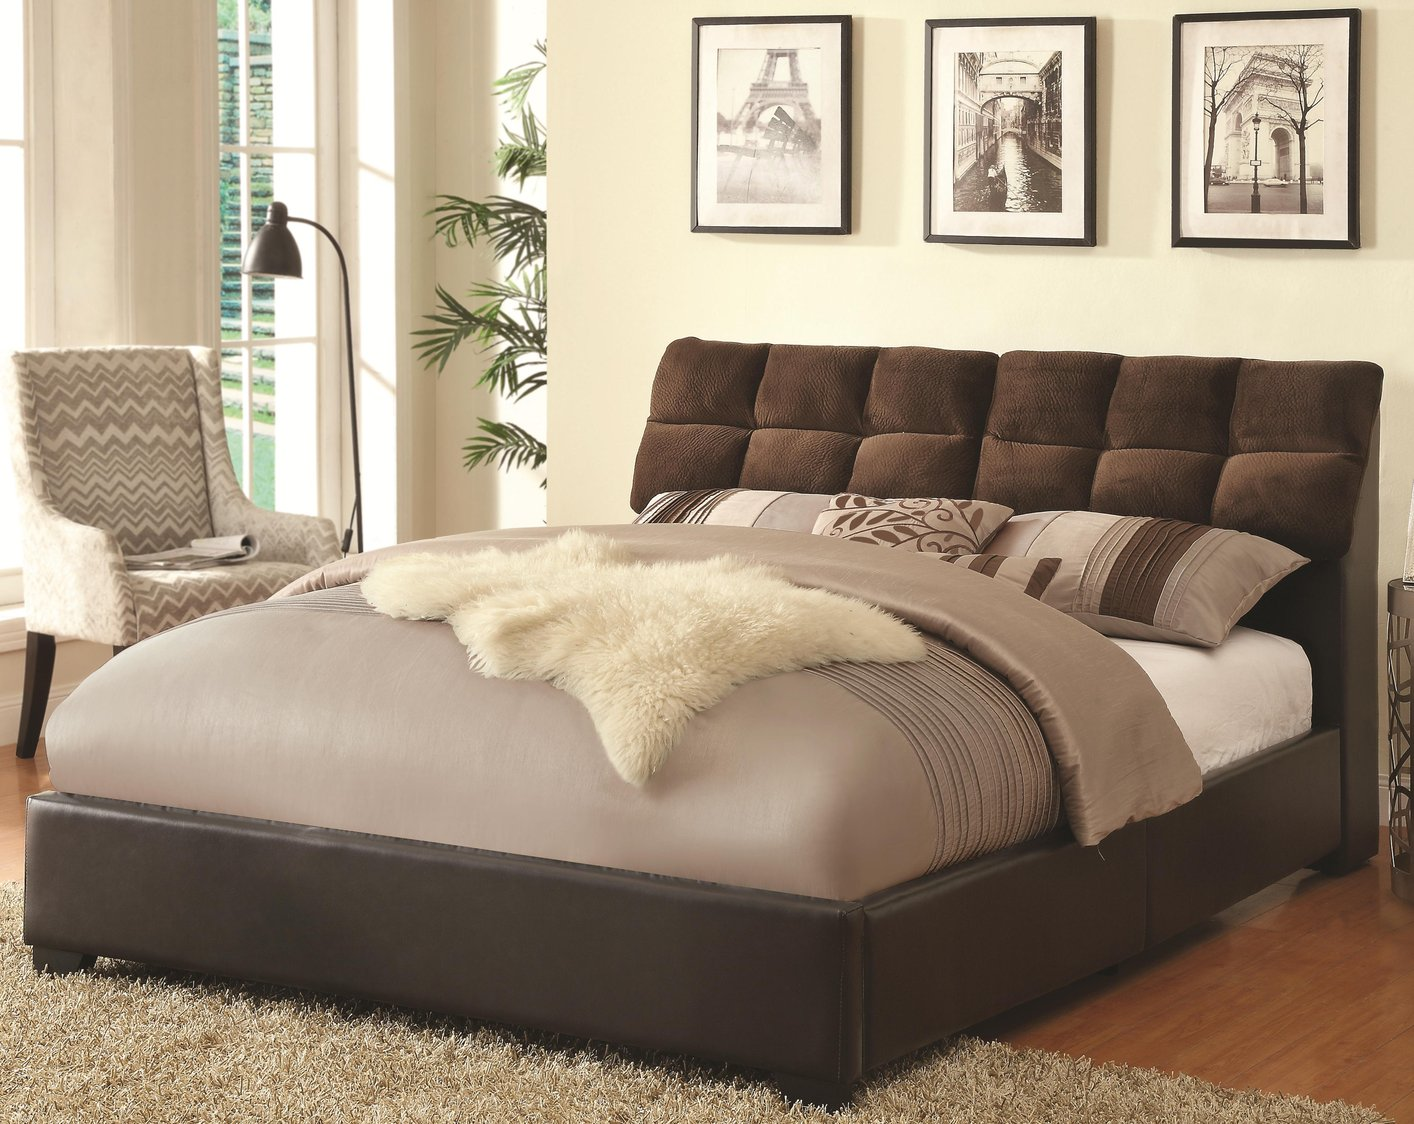 Brown Leather Queen Size Bed Steal A Sofa Furniture Outlet Los